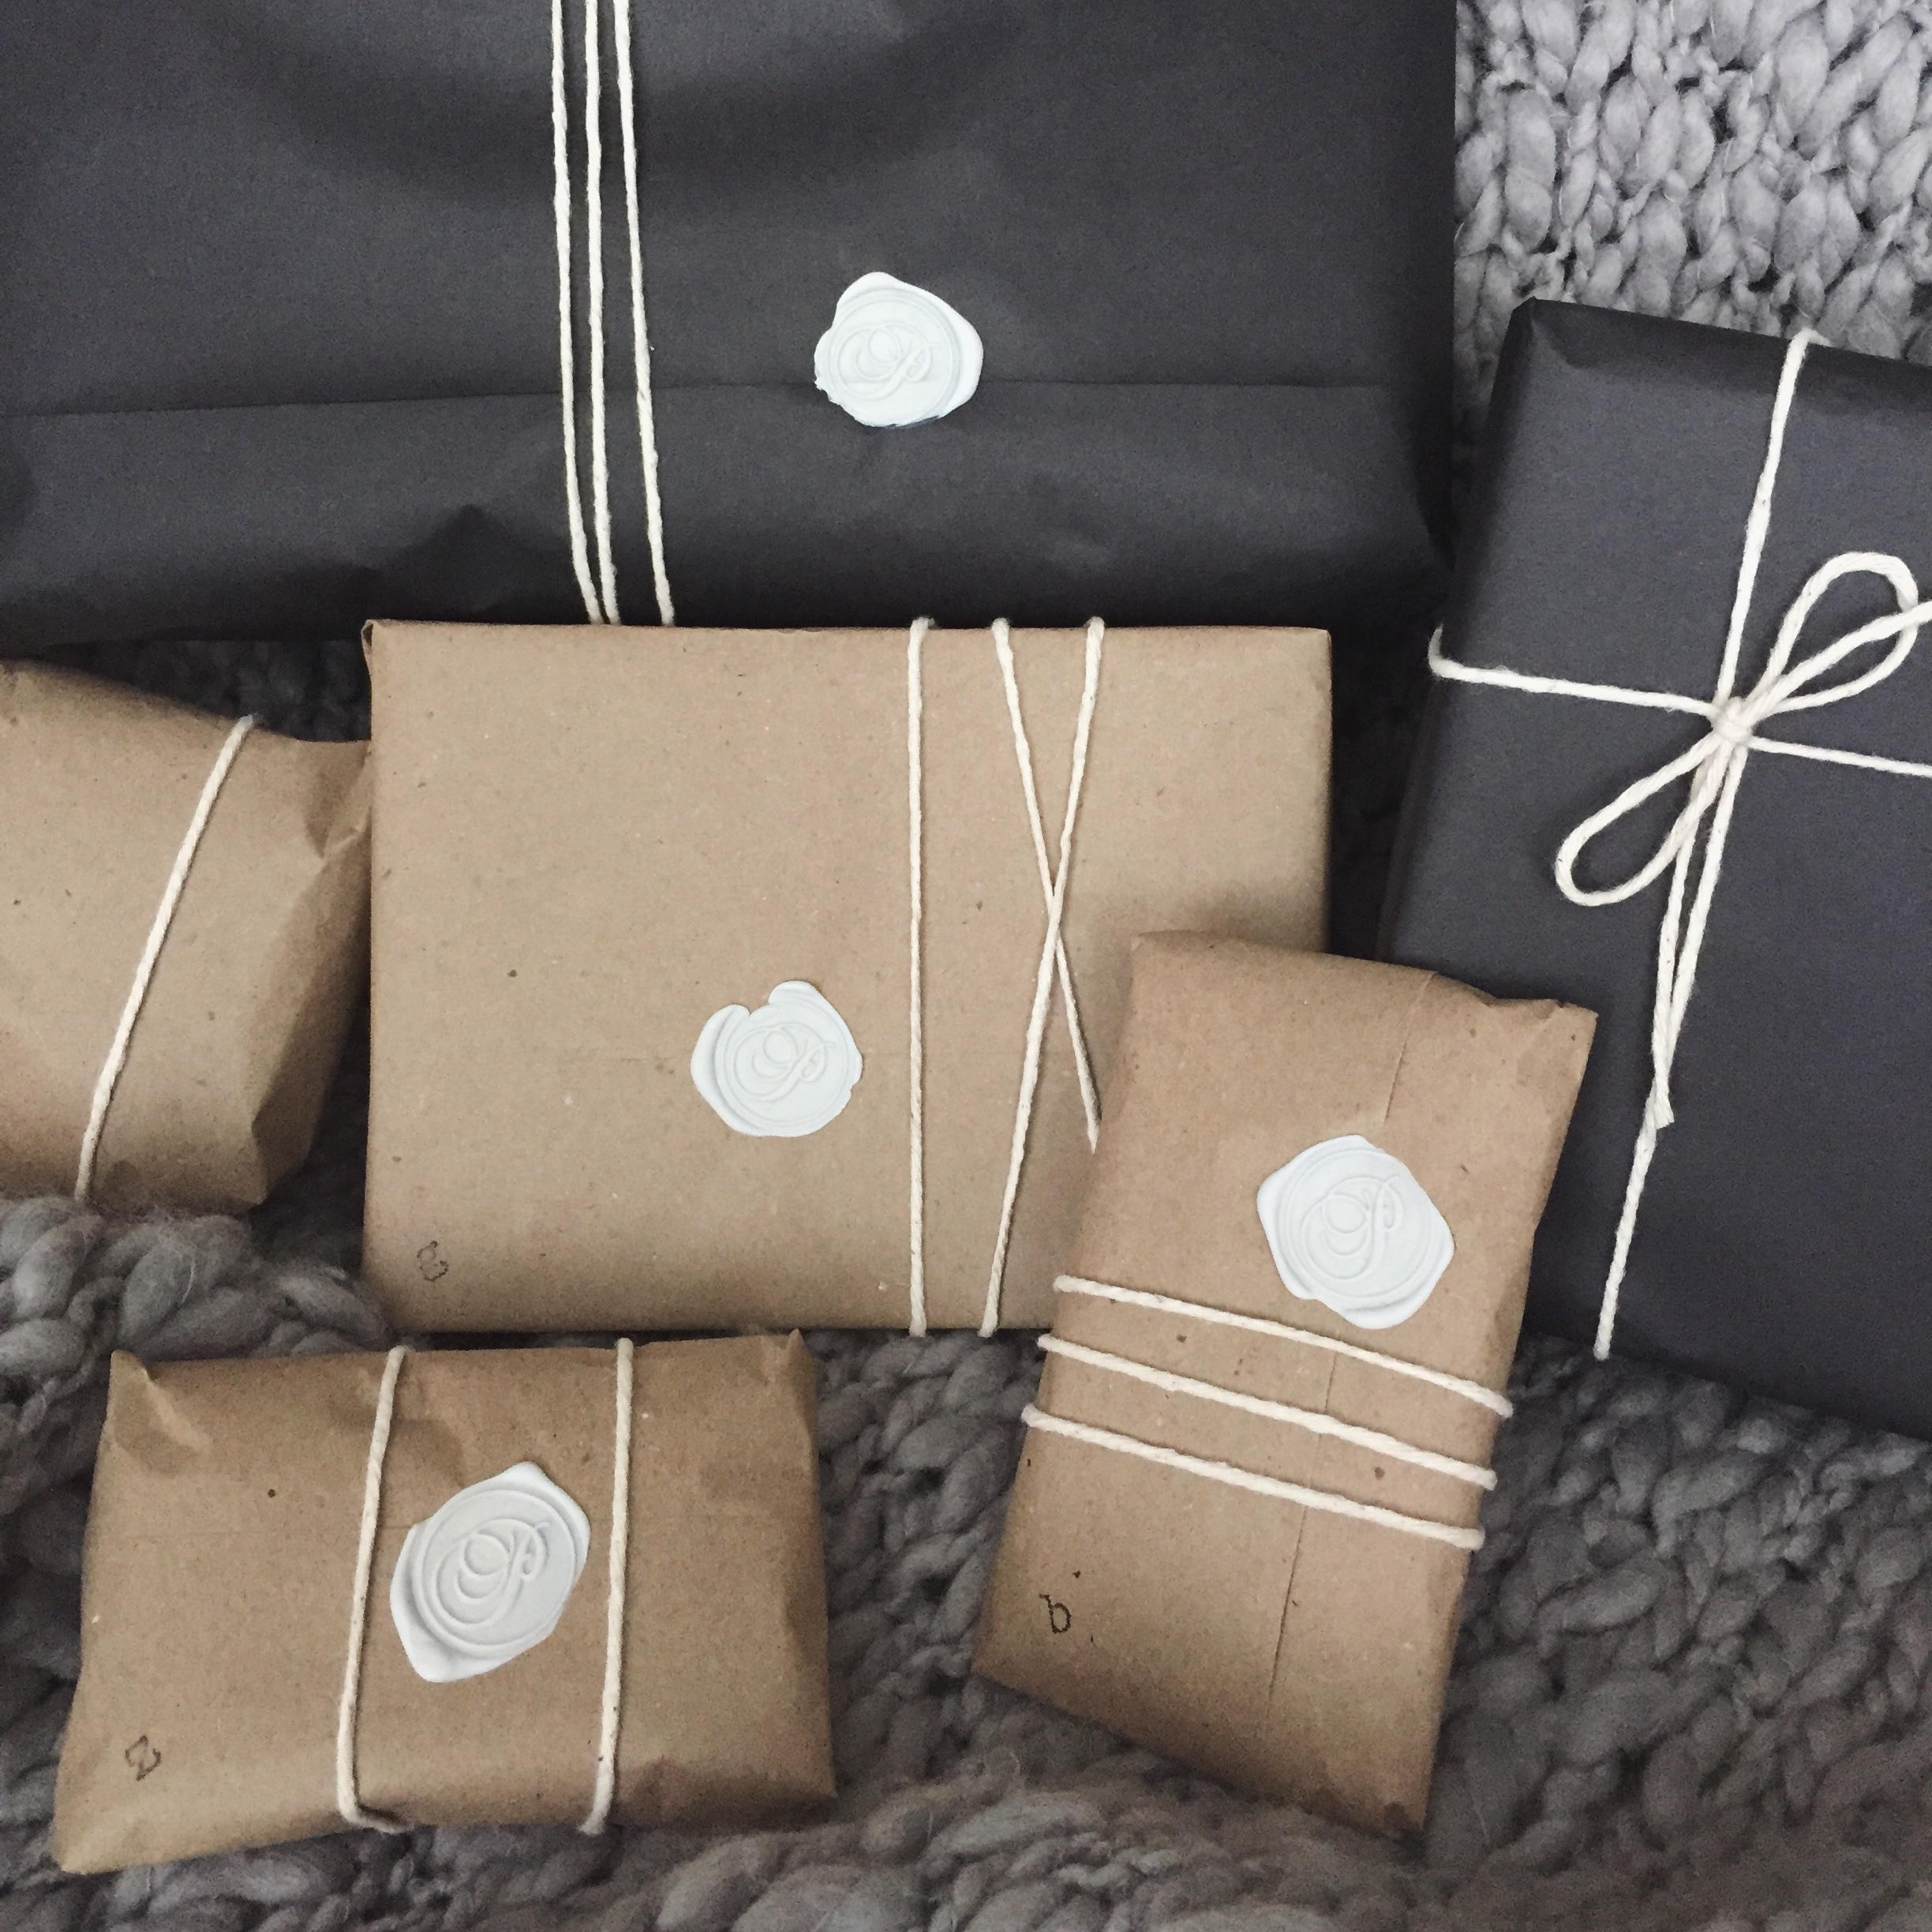 In designs christmas gift wrapping ideas - Diy Gift Wrap With Wax Seals